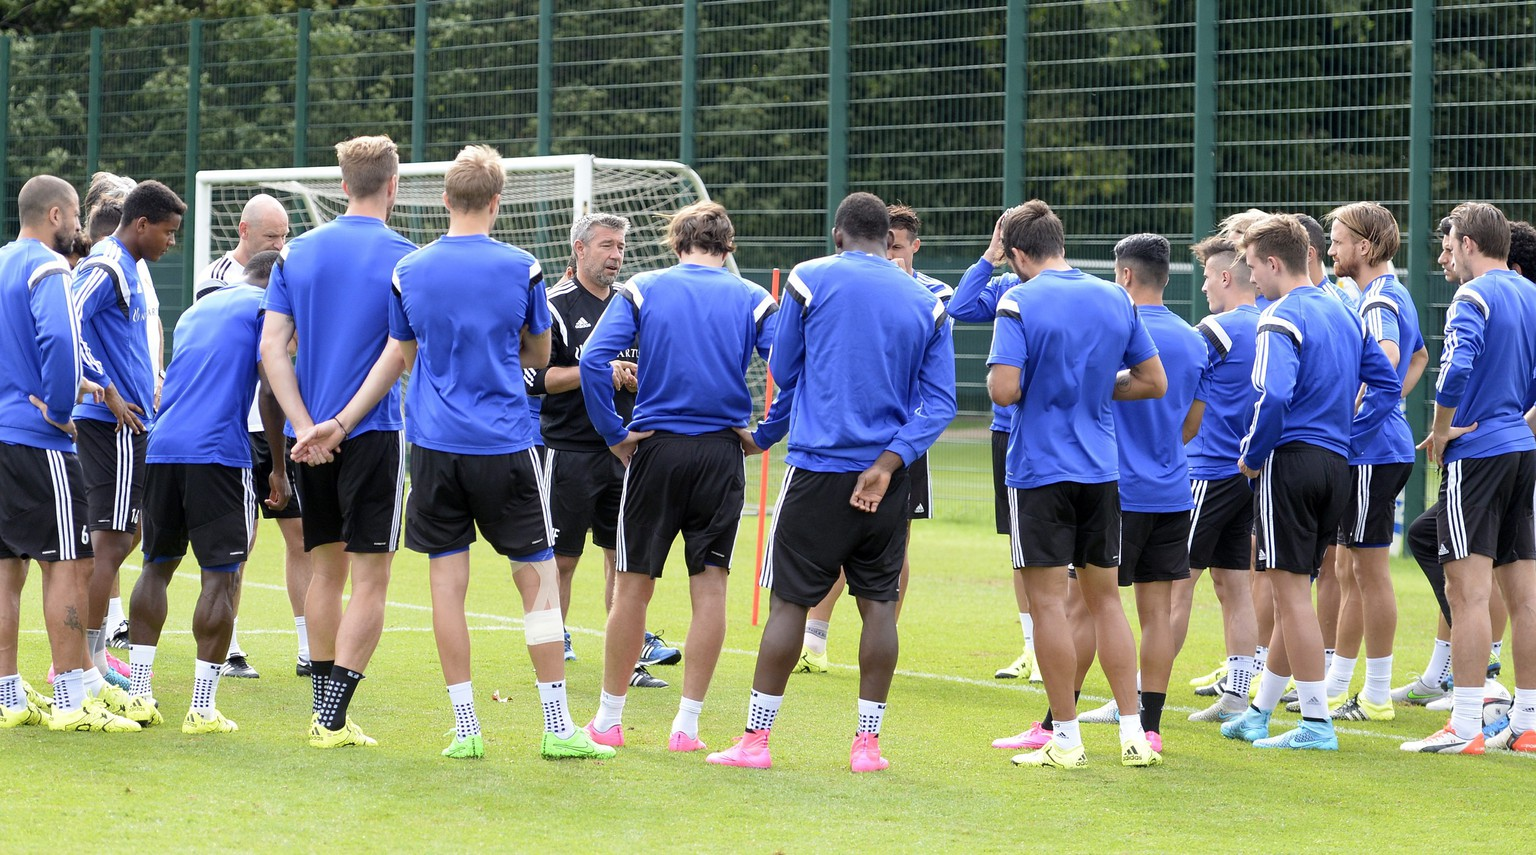 epa04871429 Urs Fischer, head coach of Switzerland's FC Basel 1893, talks to players during a training session in the St. Jakob-Park training area in Basel, Switzerland, on Tuesday, August 4, 2015. Switzerland's FC Basel 1893 is scheduled to play against Poland's KKS Lech Poznan in an UEFA Champions League third qualifying round second leg soccer match on Wednesday, August 5, 2015.  EPA/GEORGIOS KEFALAS